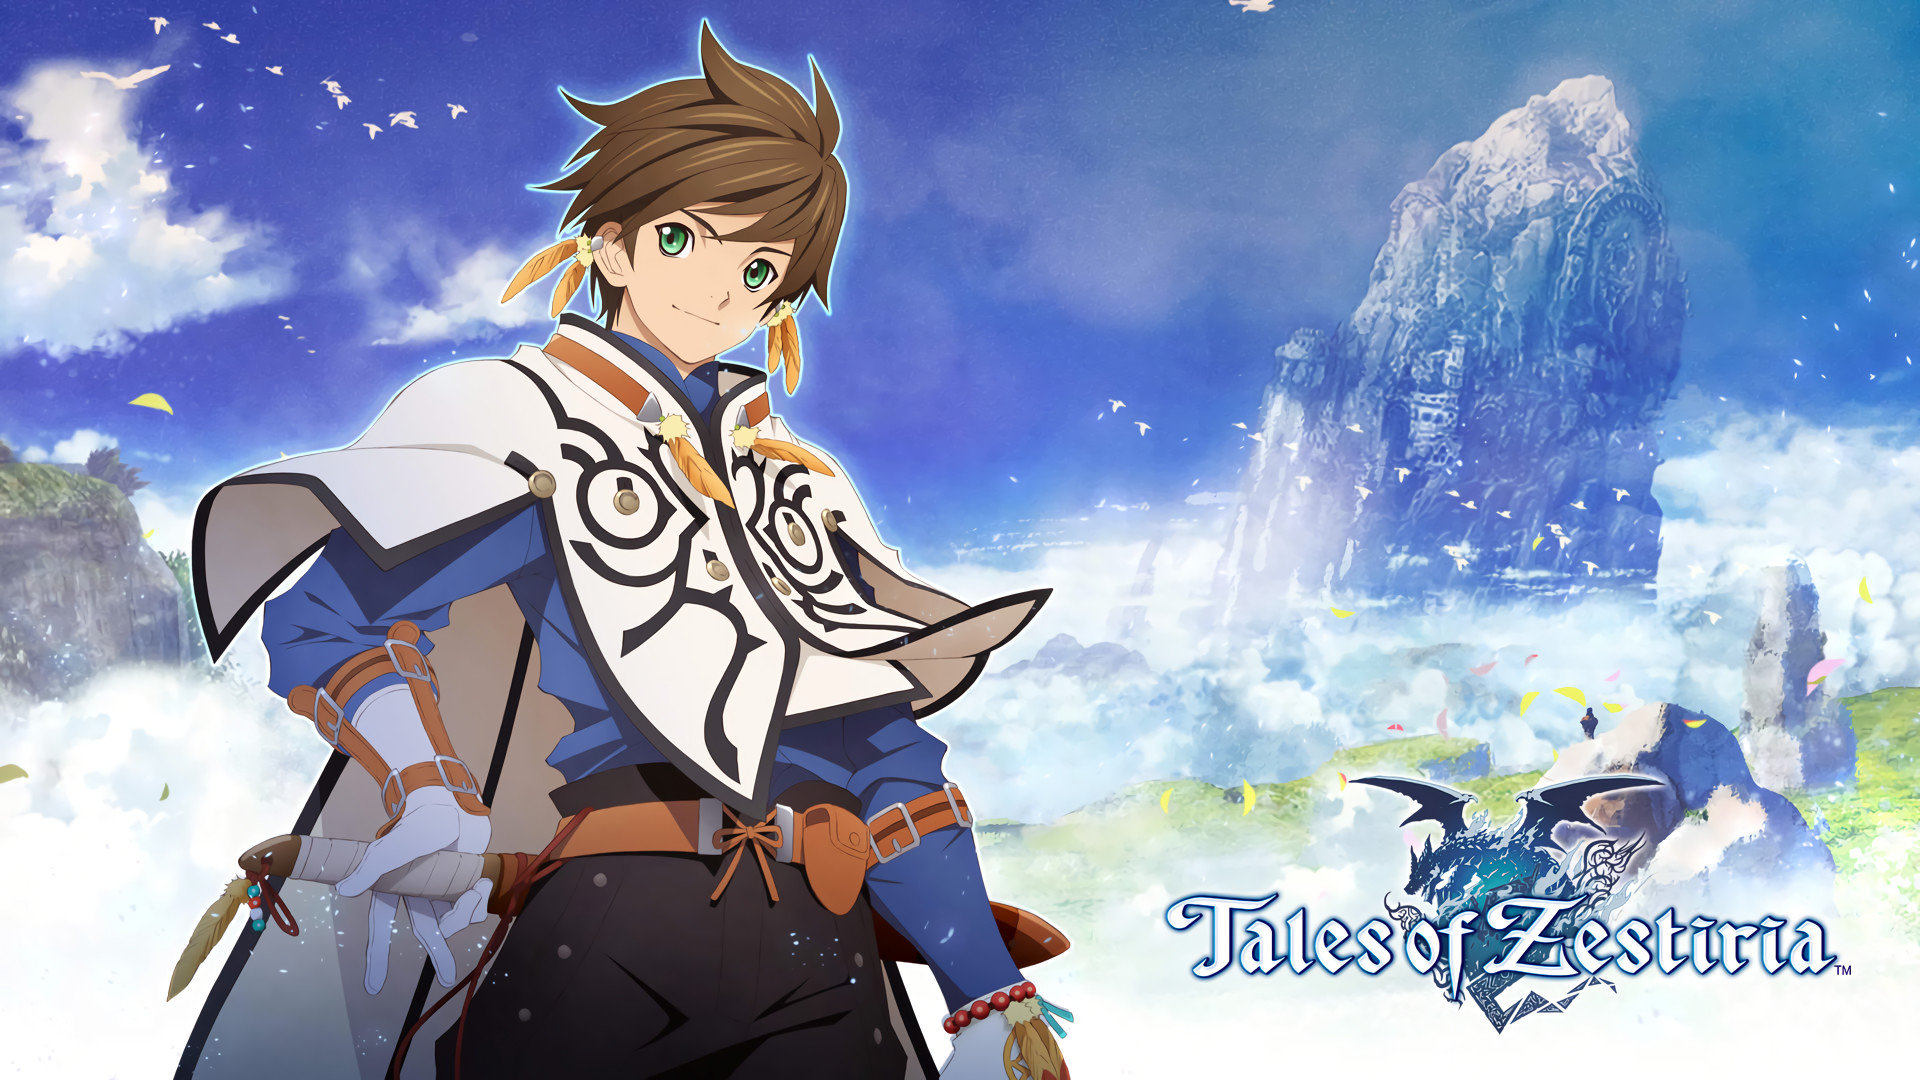 Download full hd 1920x1080 Tales Of Zestiria desktop background ID:109560 for free